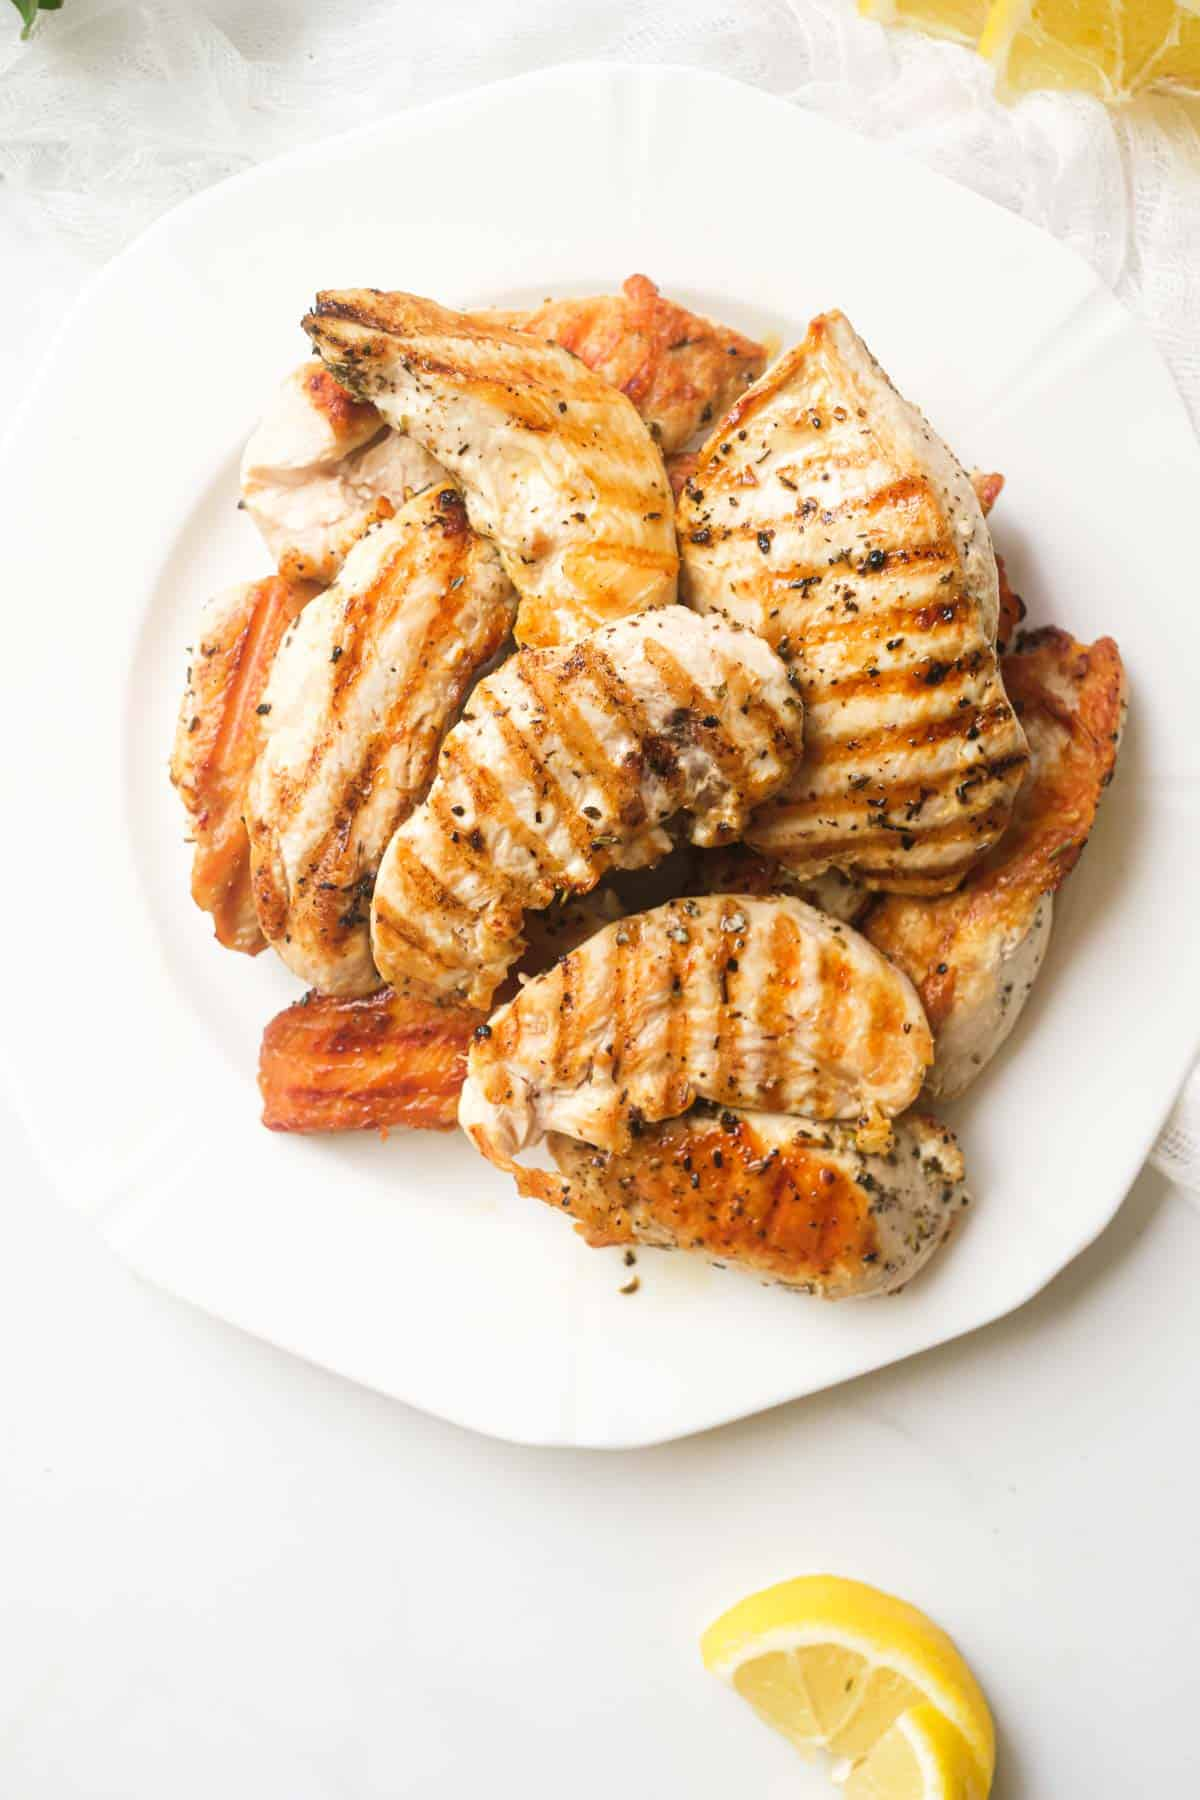 close up view of the finished grilled chicken tenders